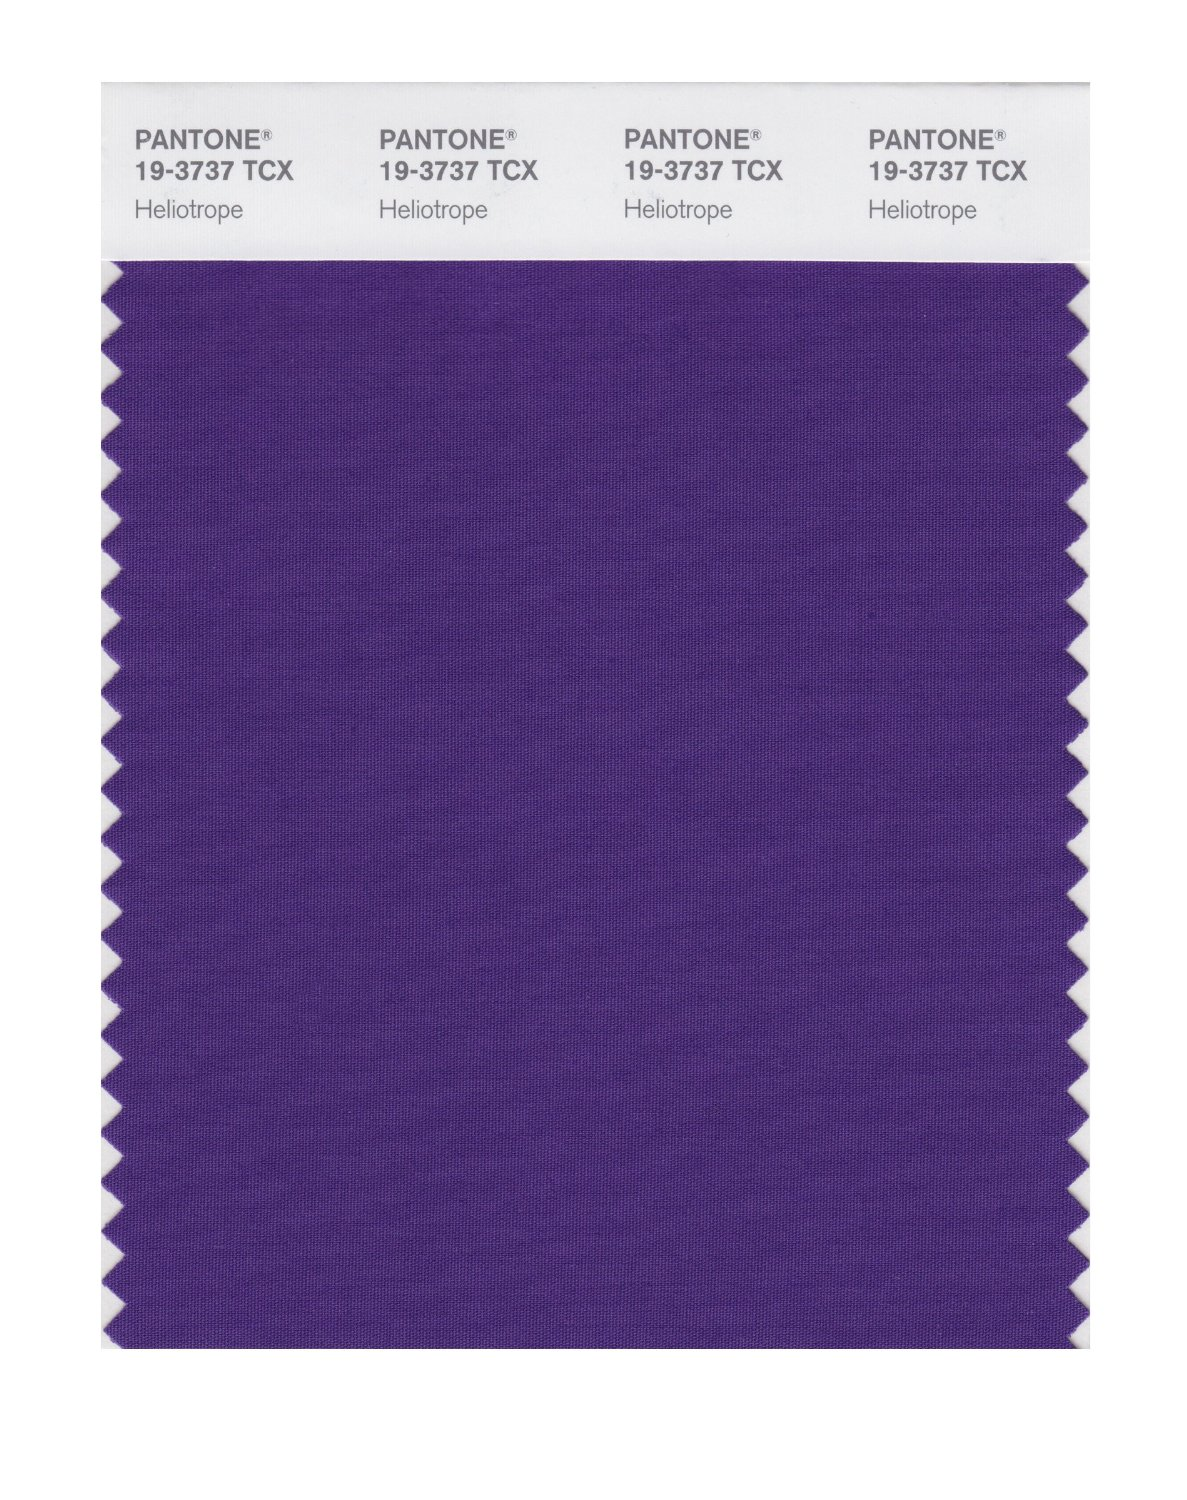 Pantone Smart Swatch 19-3737 Heliotrope